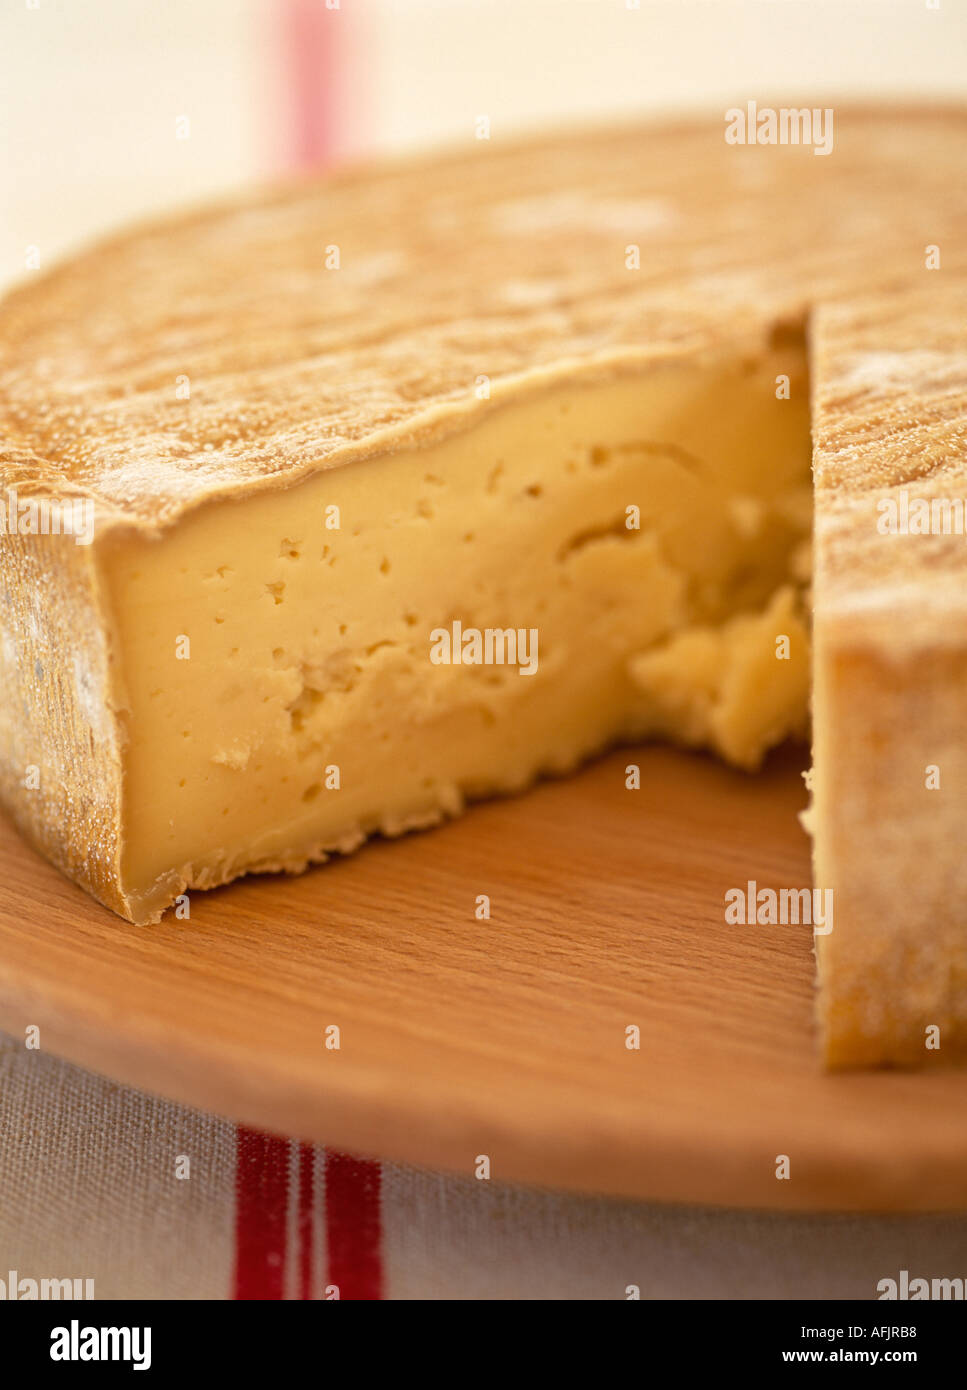 French cheese with wedge removed on wooden board and linen cloth - Stock Image